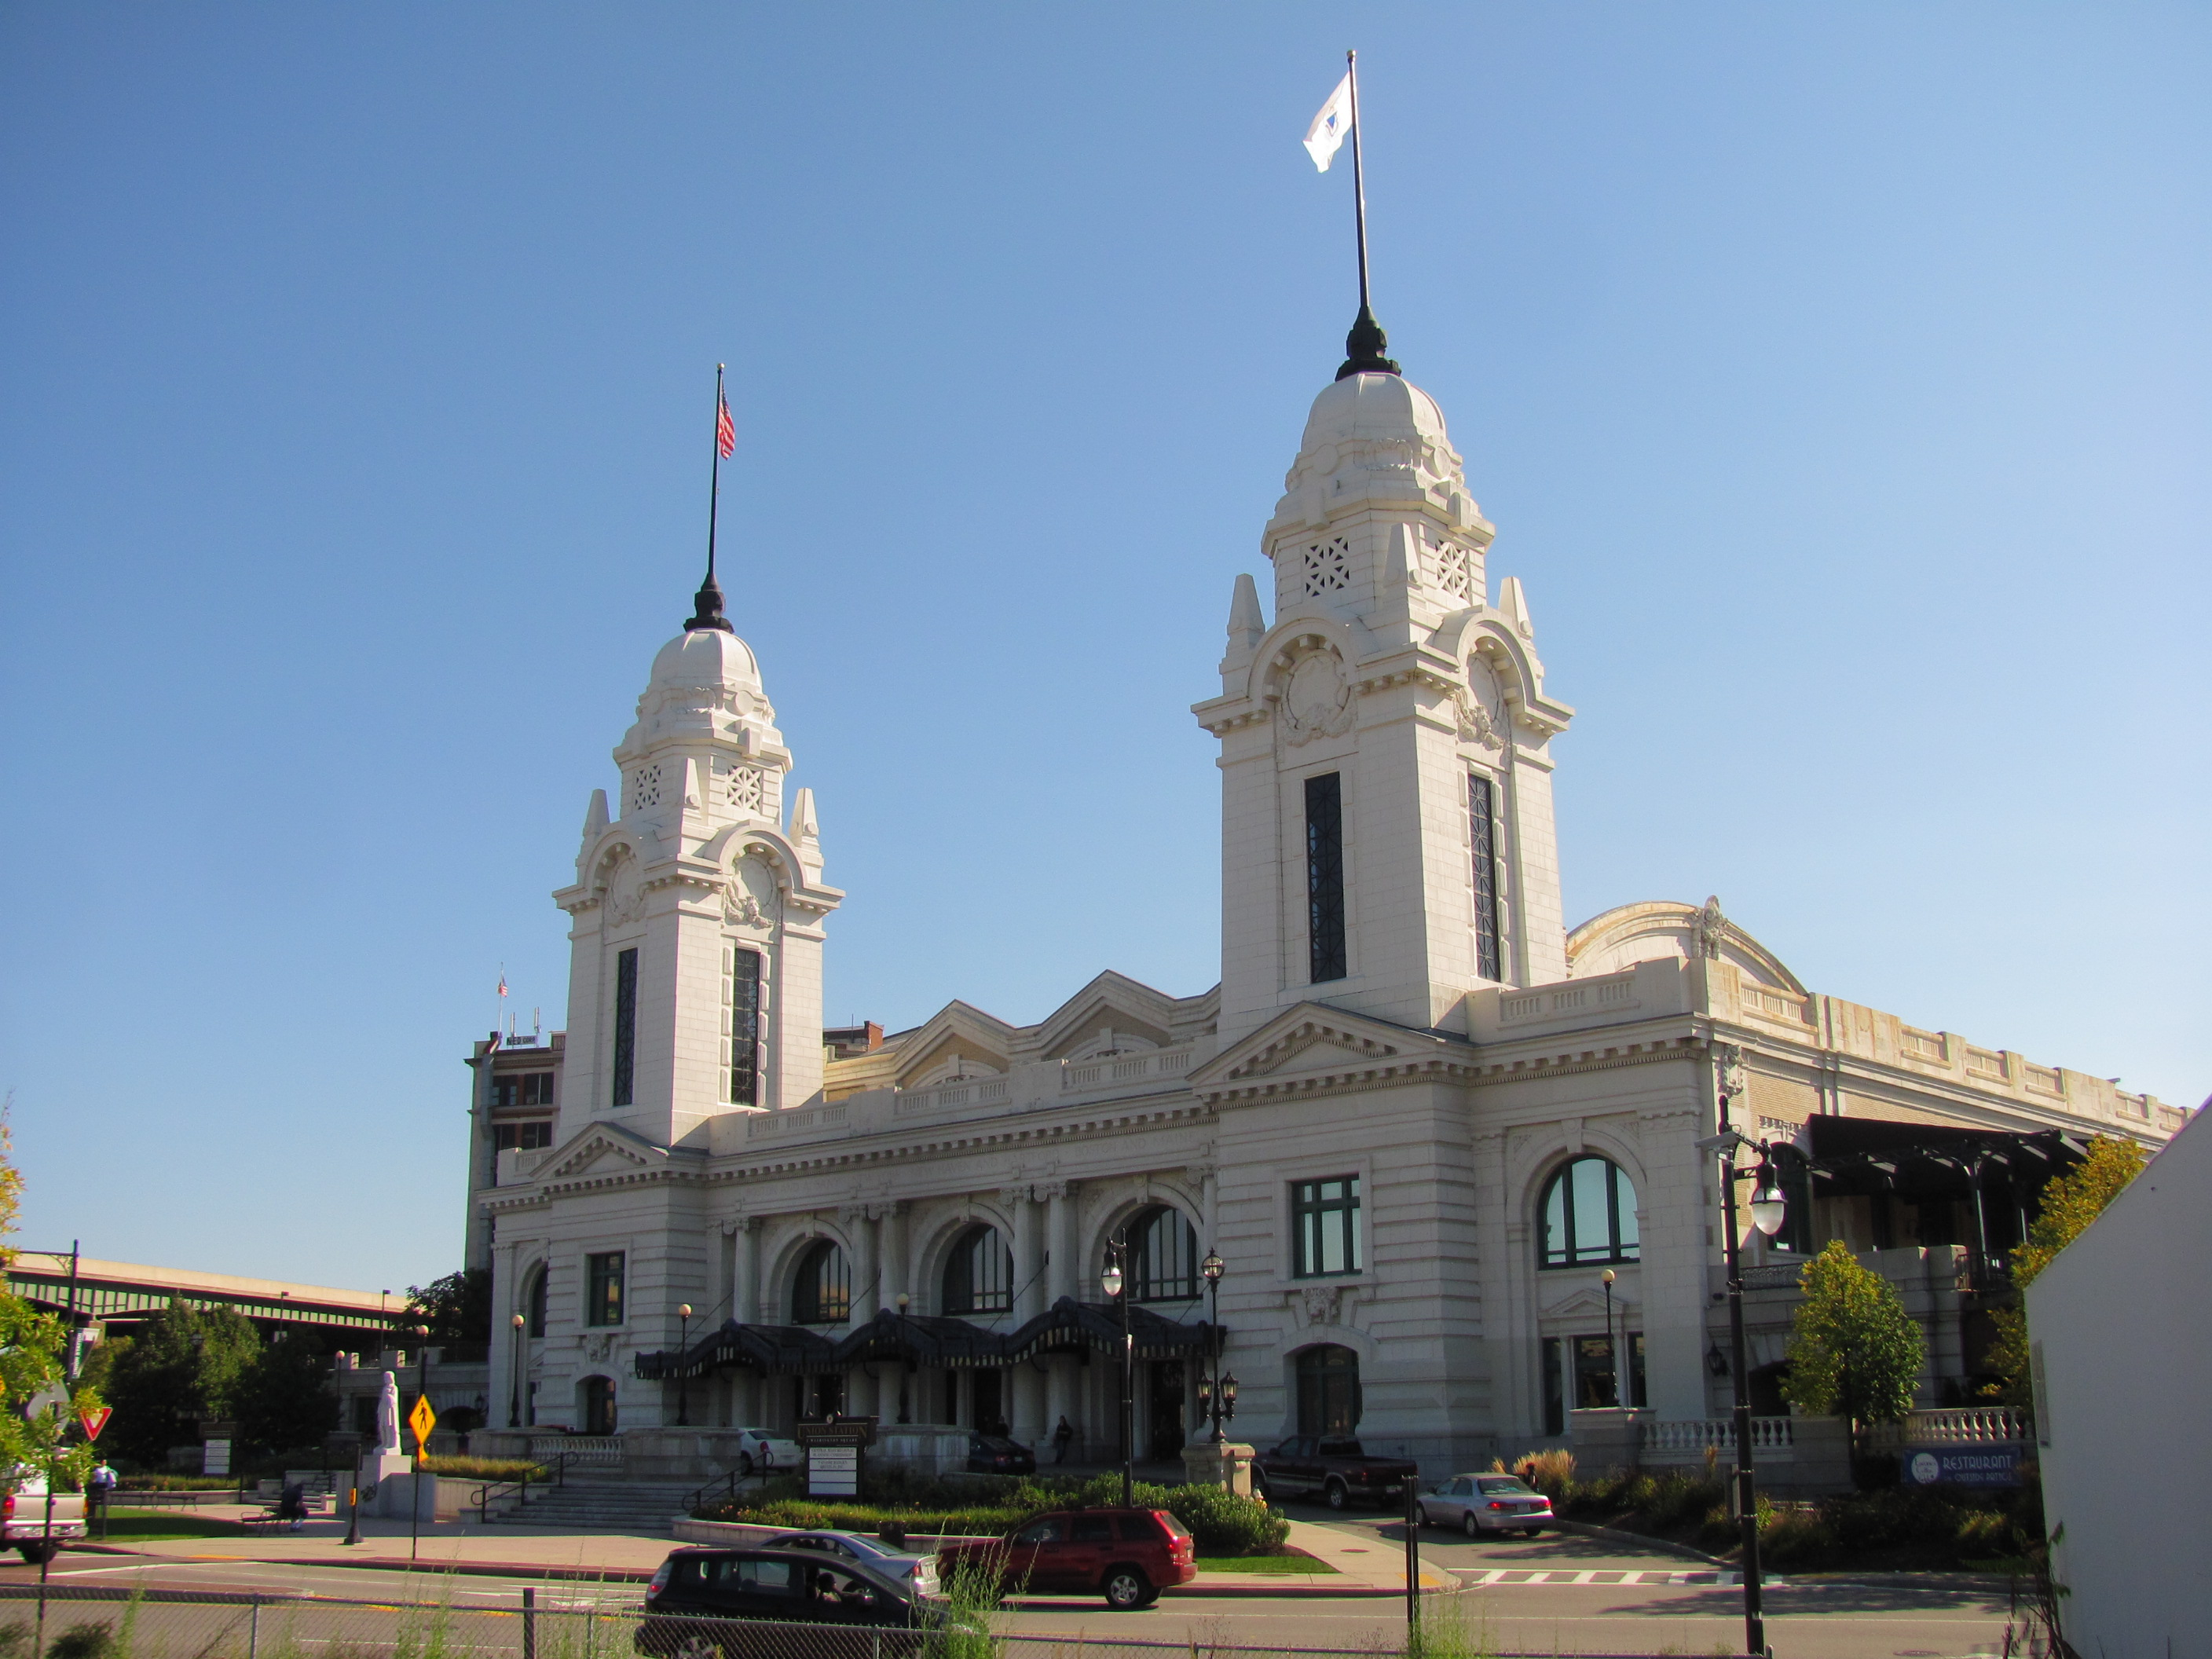 Worcester Union Station (image from Wikimedia)